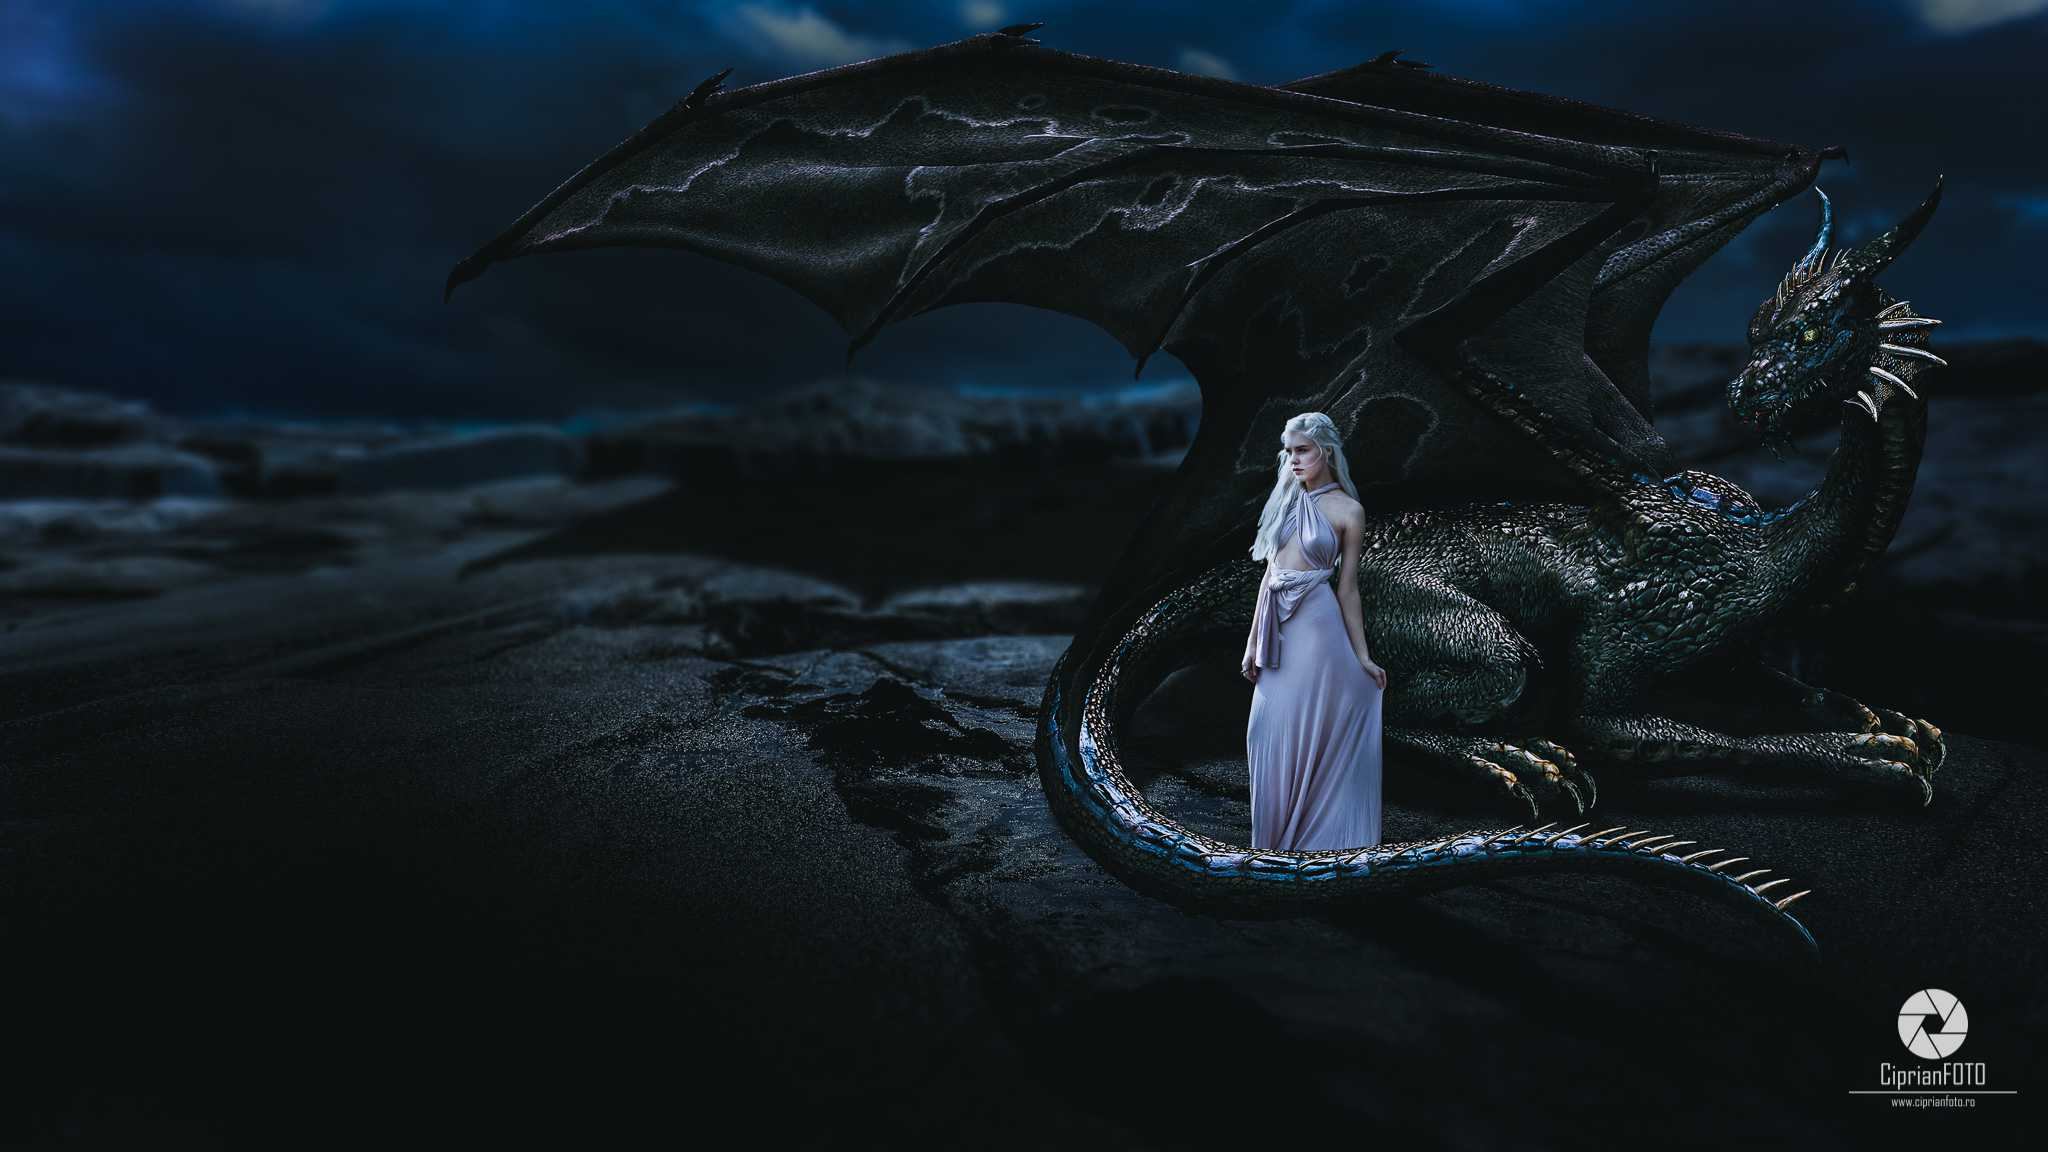 The_Princess_Of_The_Dragon_Photoshop_Manipulation_Tutorial_CiprianFOTO